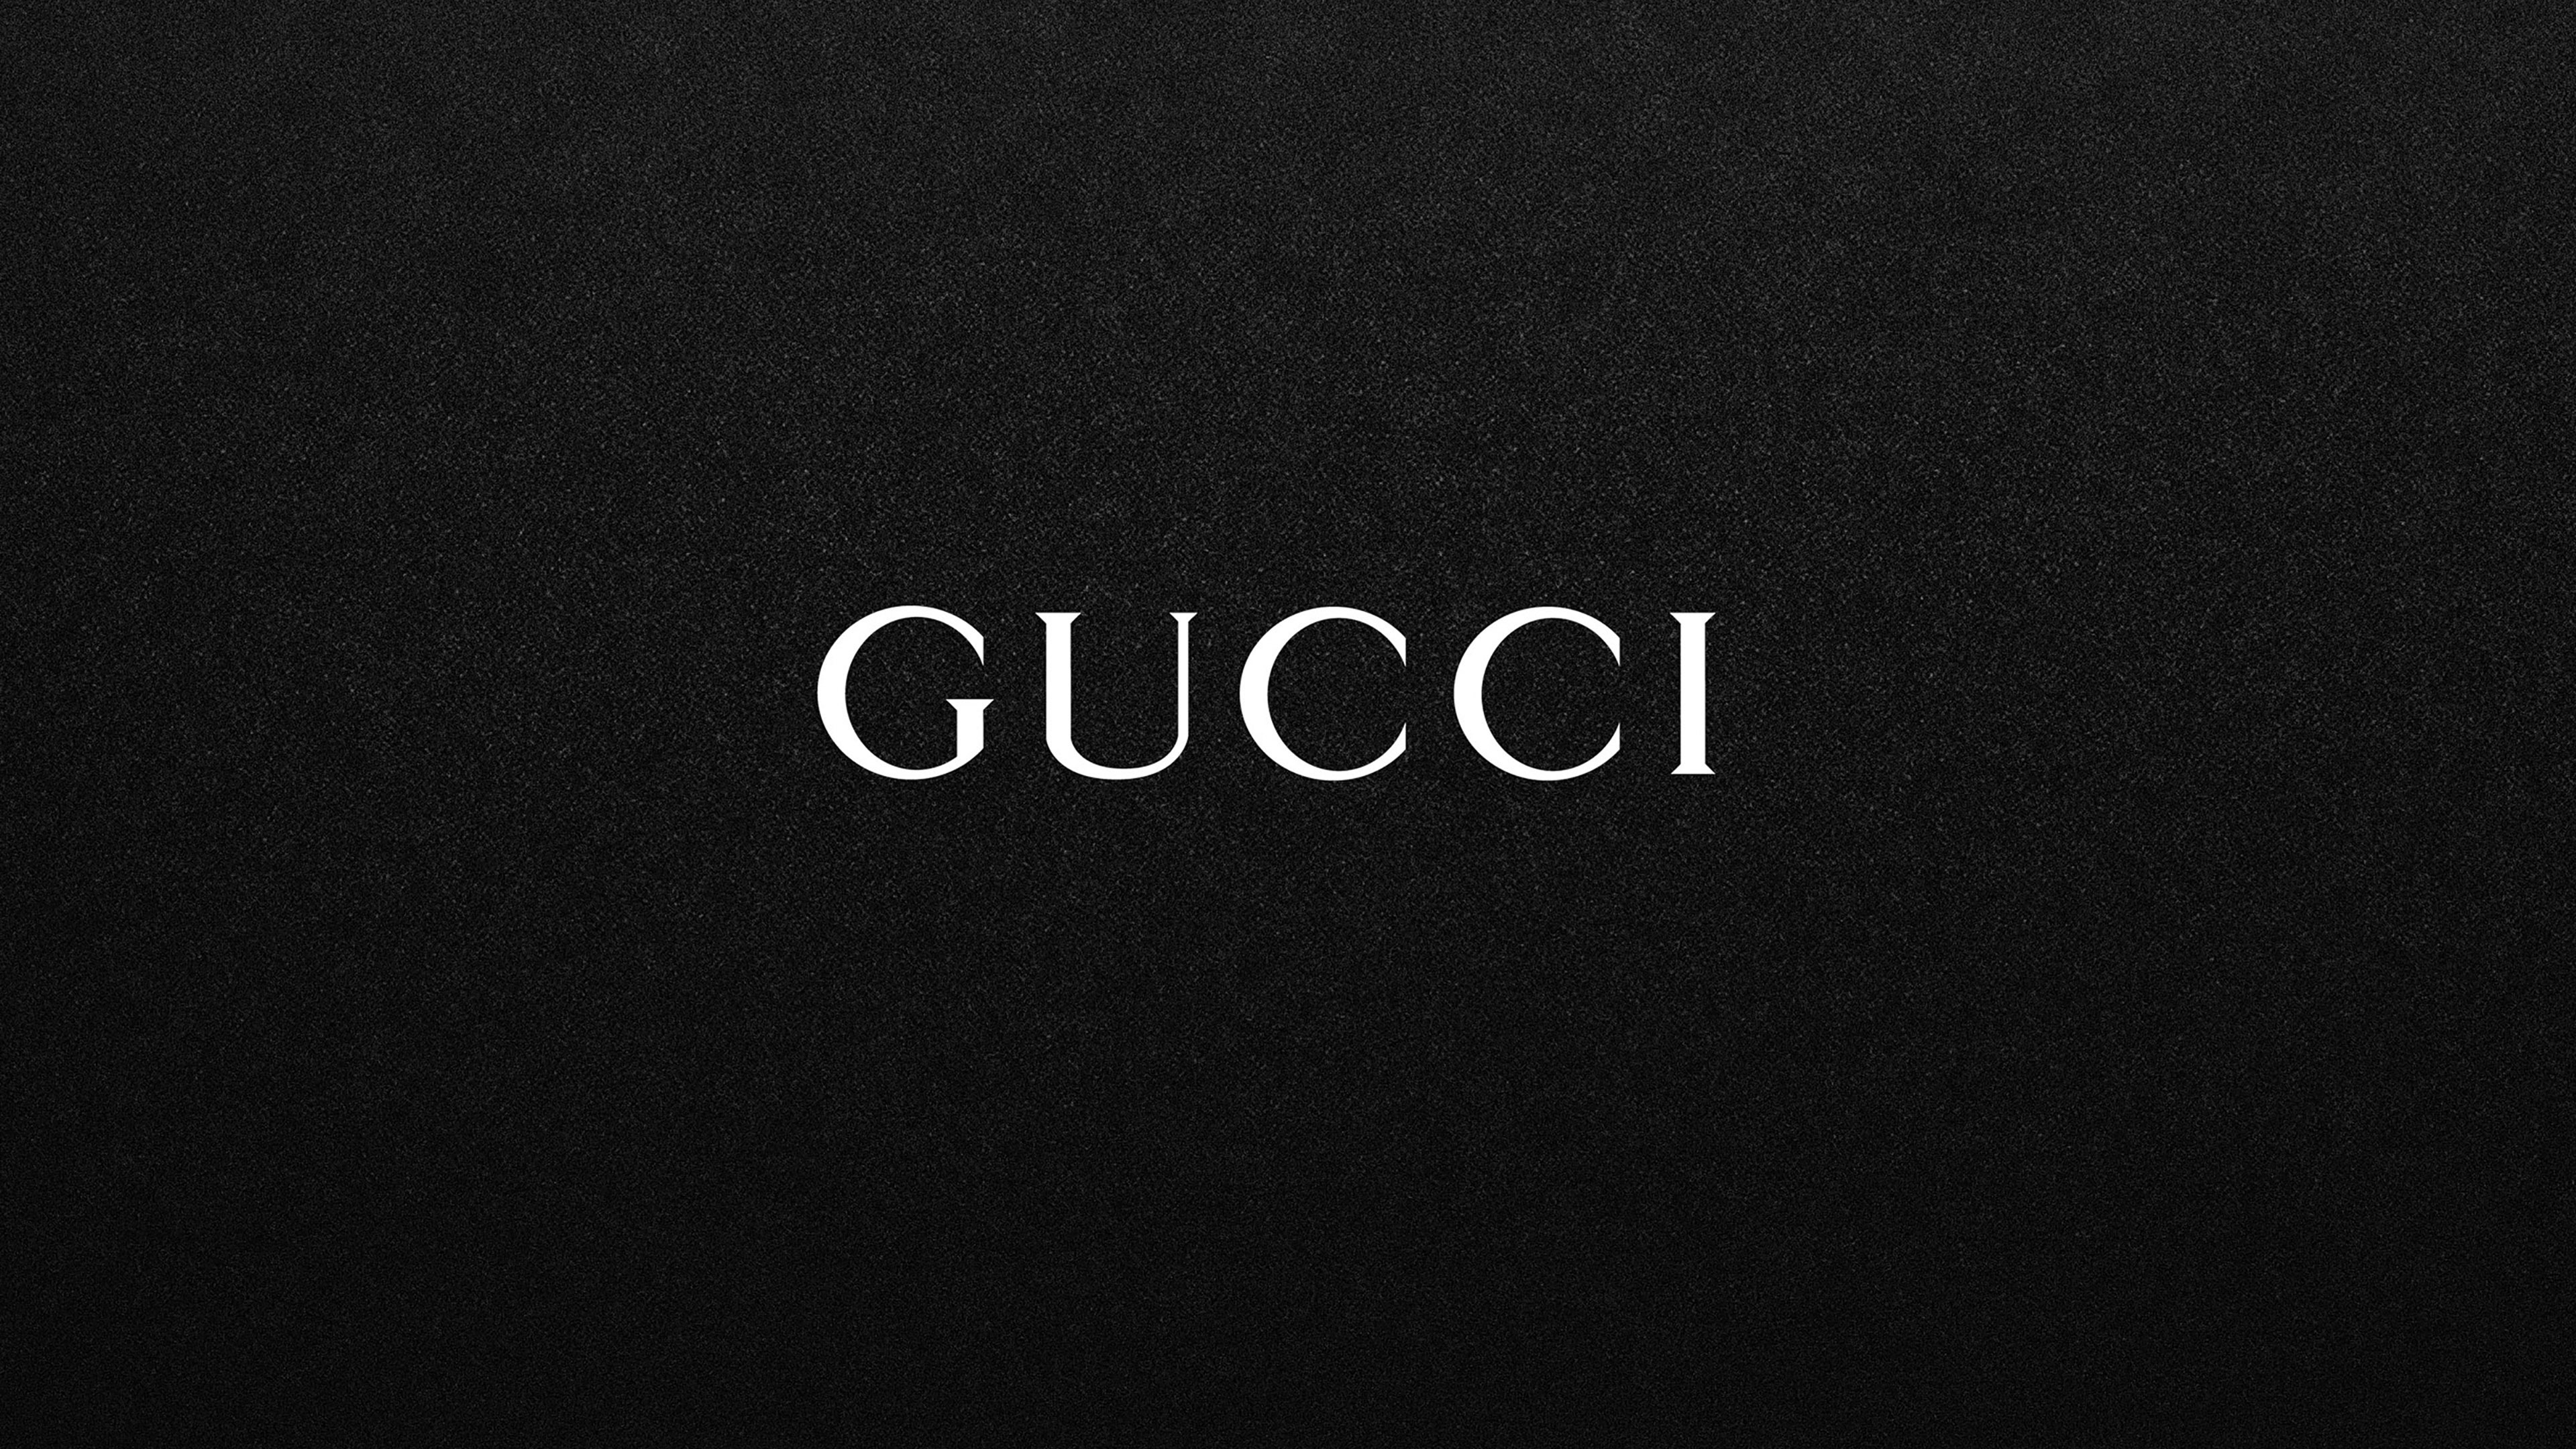 Gucci Wallpapers 1080p 3731T85   4USkY 3840x2160